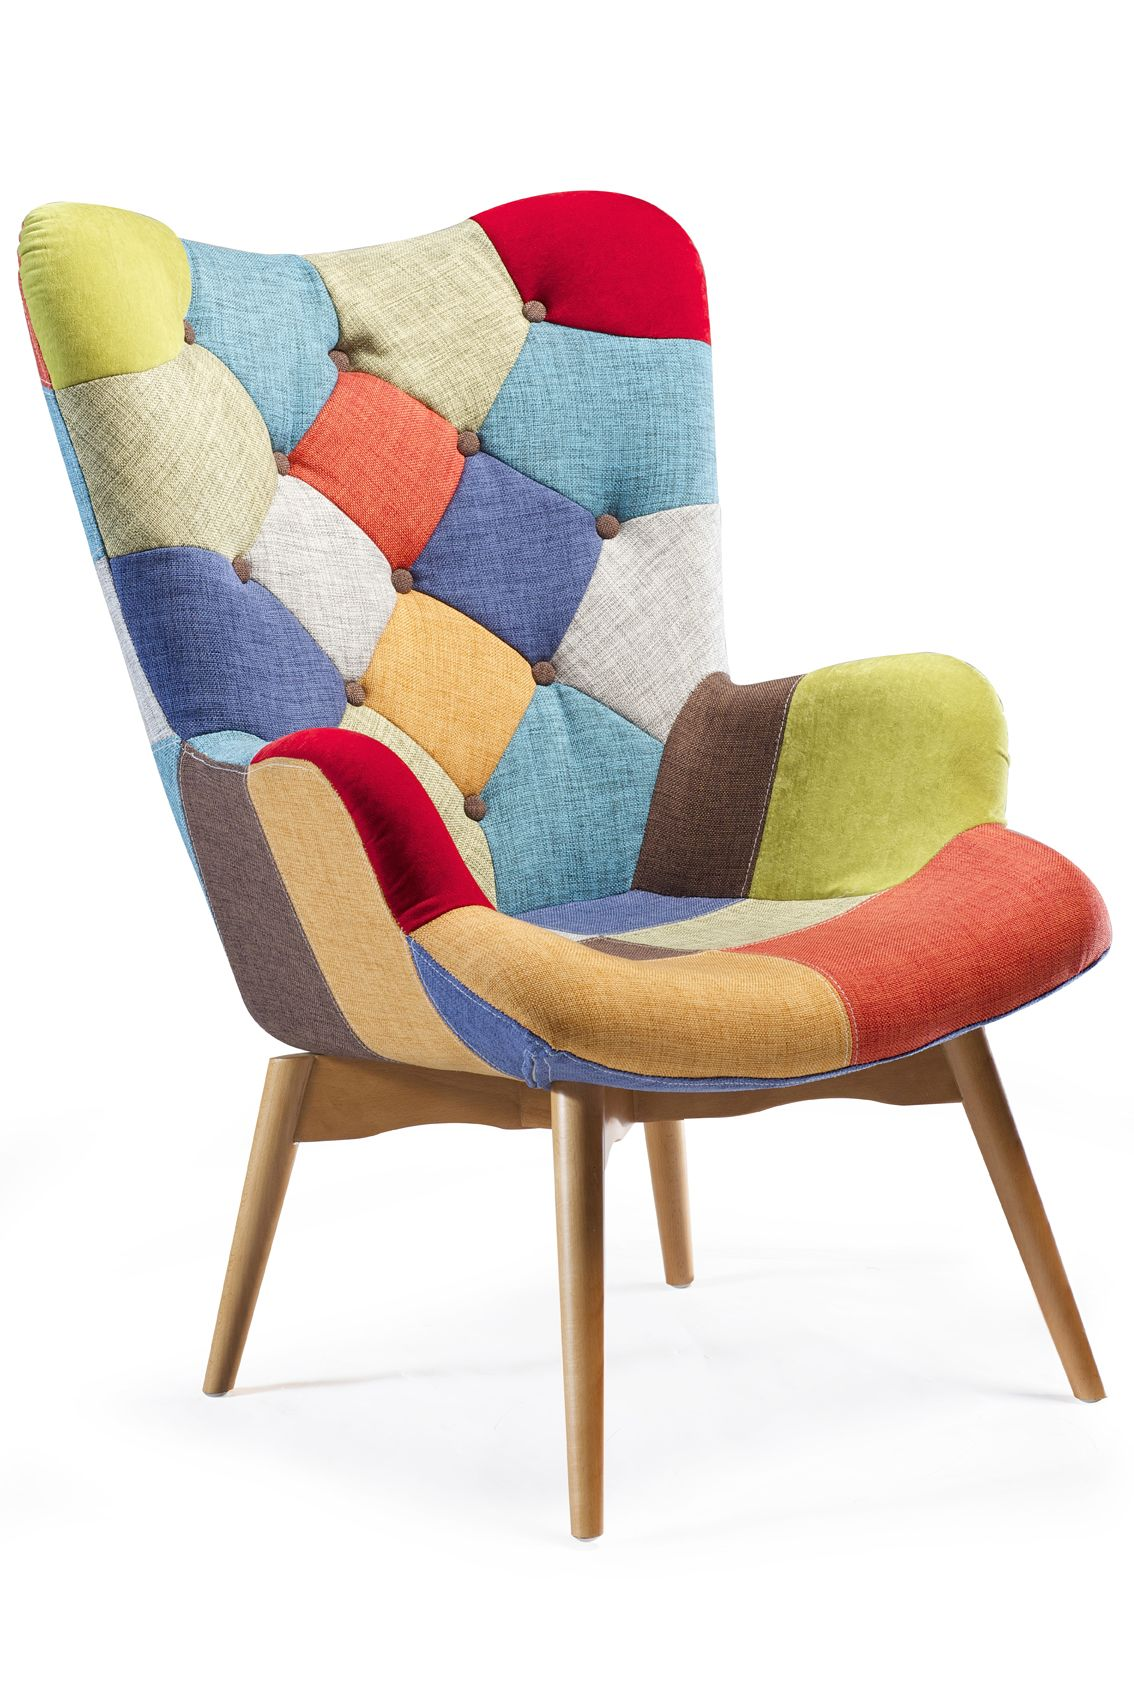 PATCH Lounge Chair in multi color and